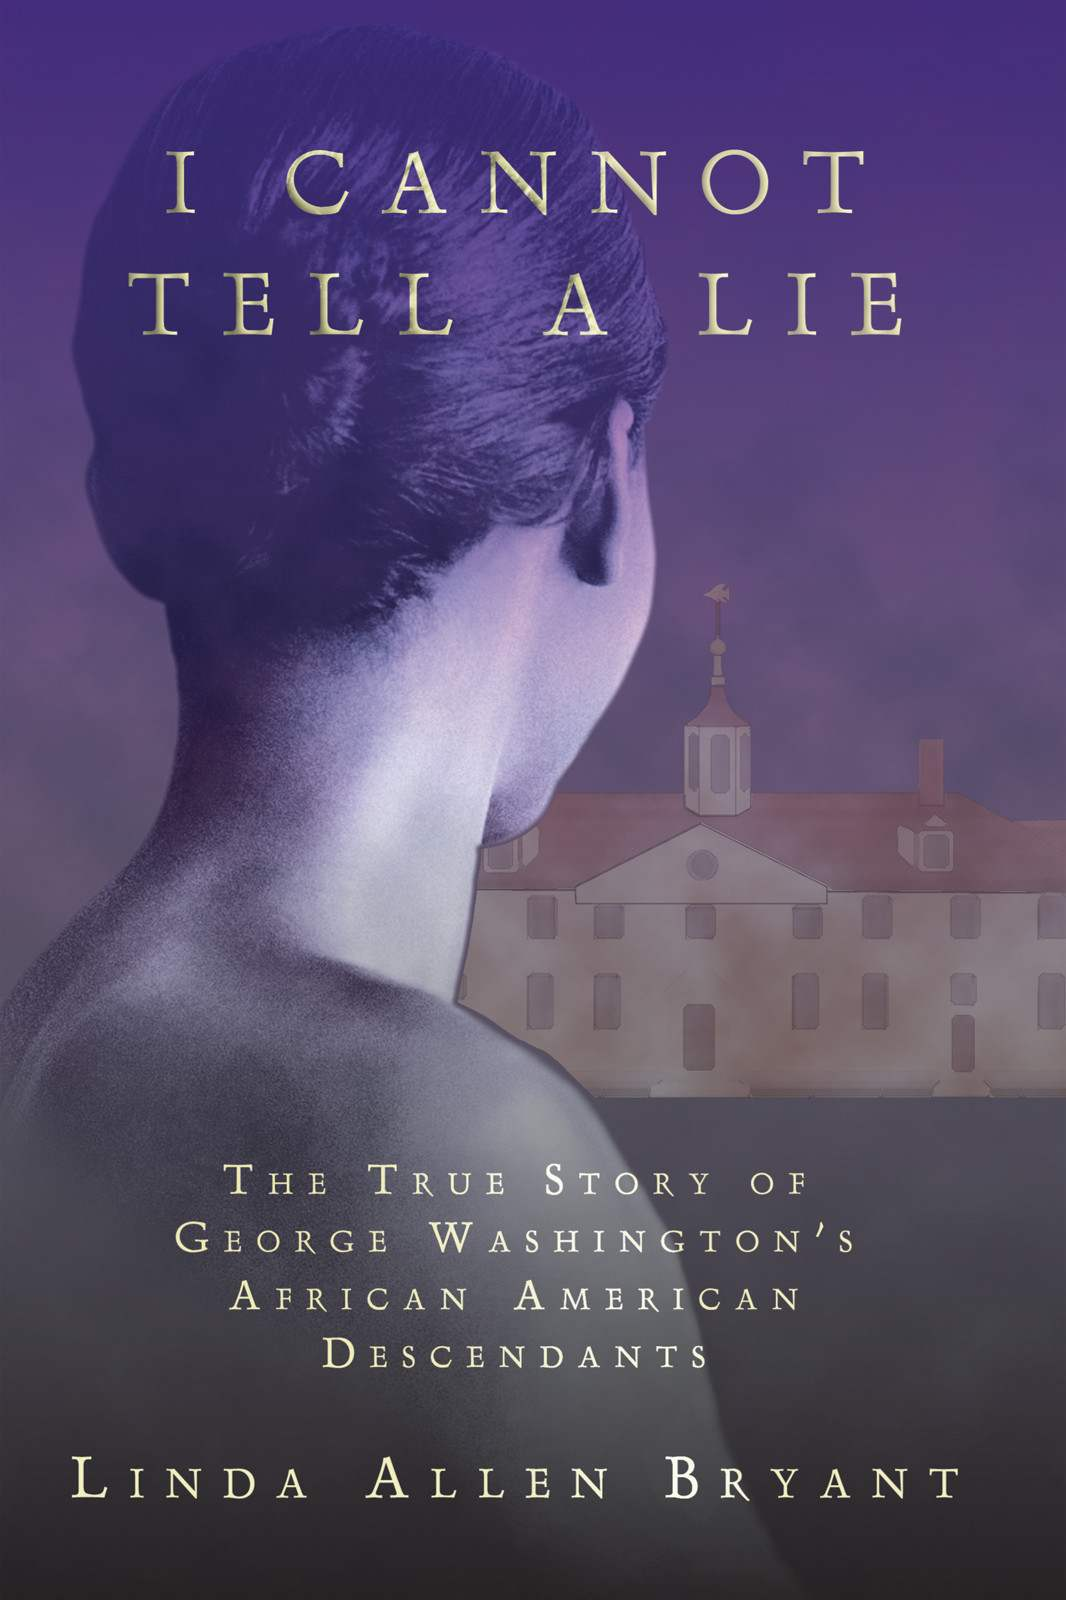 I Cannot Tell a Lie: The True Story of George Washington's African American Descendants